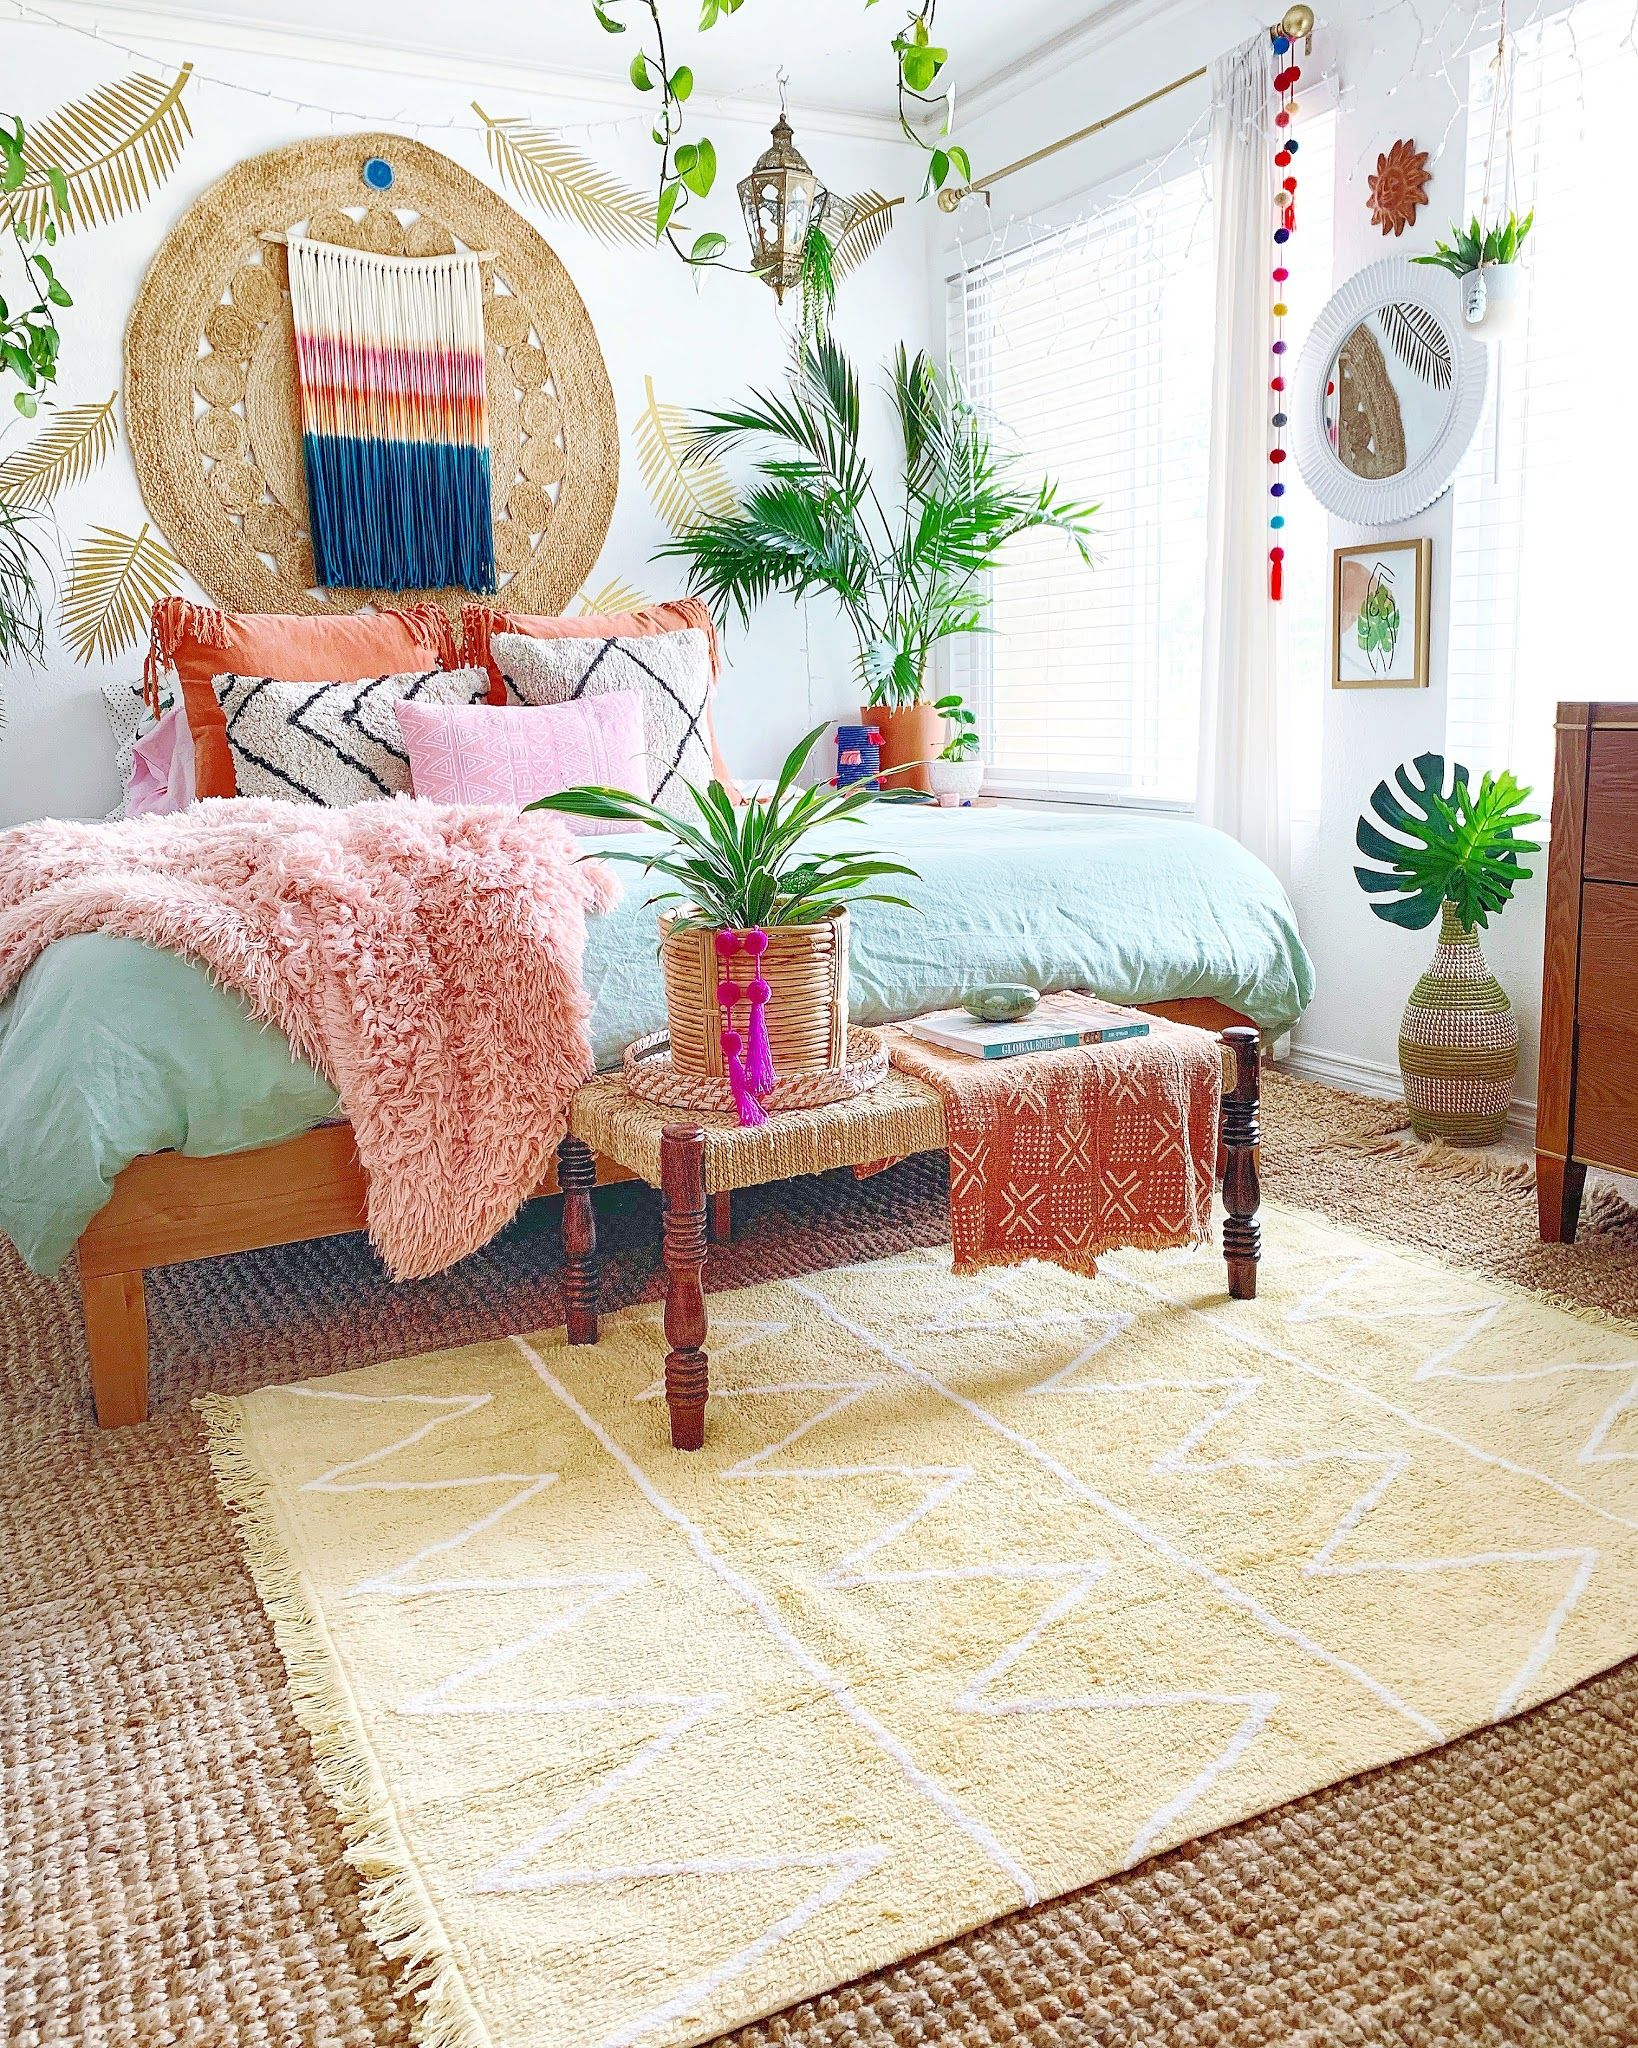 Lorena Canals Official Web Shop New Collection Lorena Canals S L Lorena Canals Boho Chic Bedroom Decor Chic Bedroom Decor Boho Style Bedroom Decor